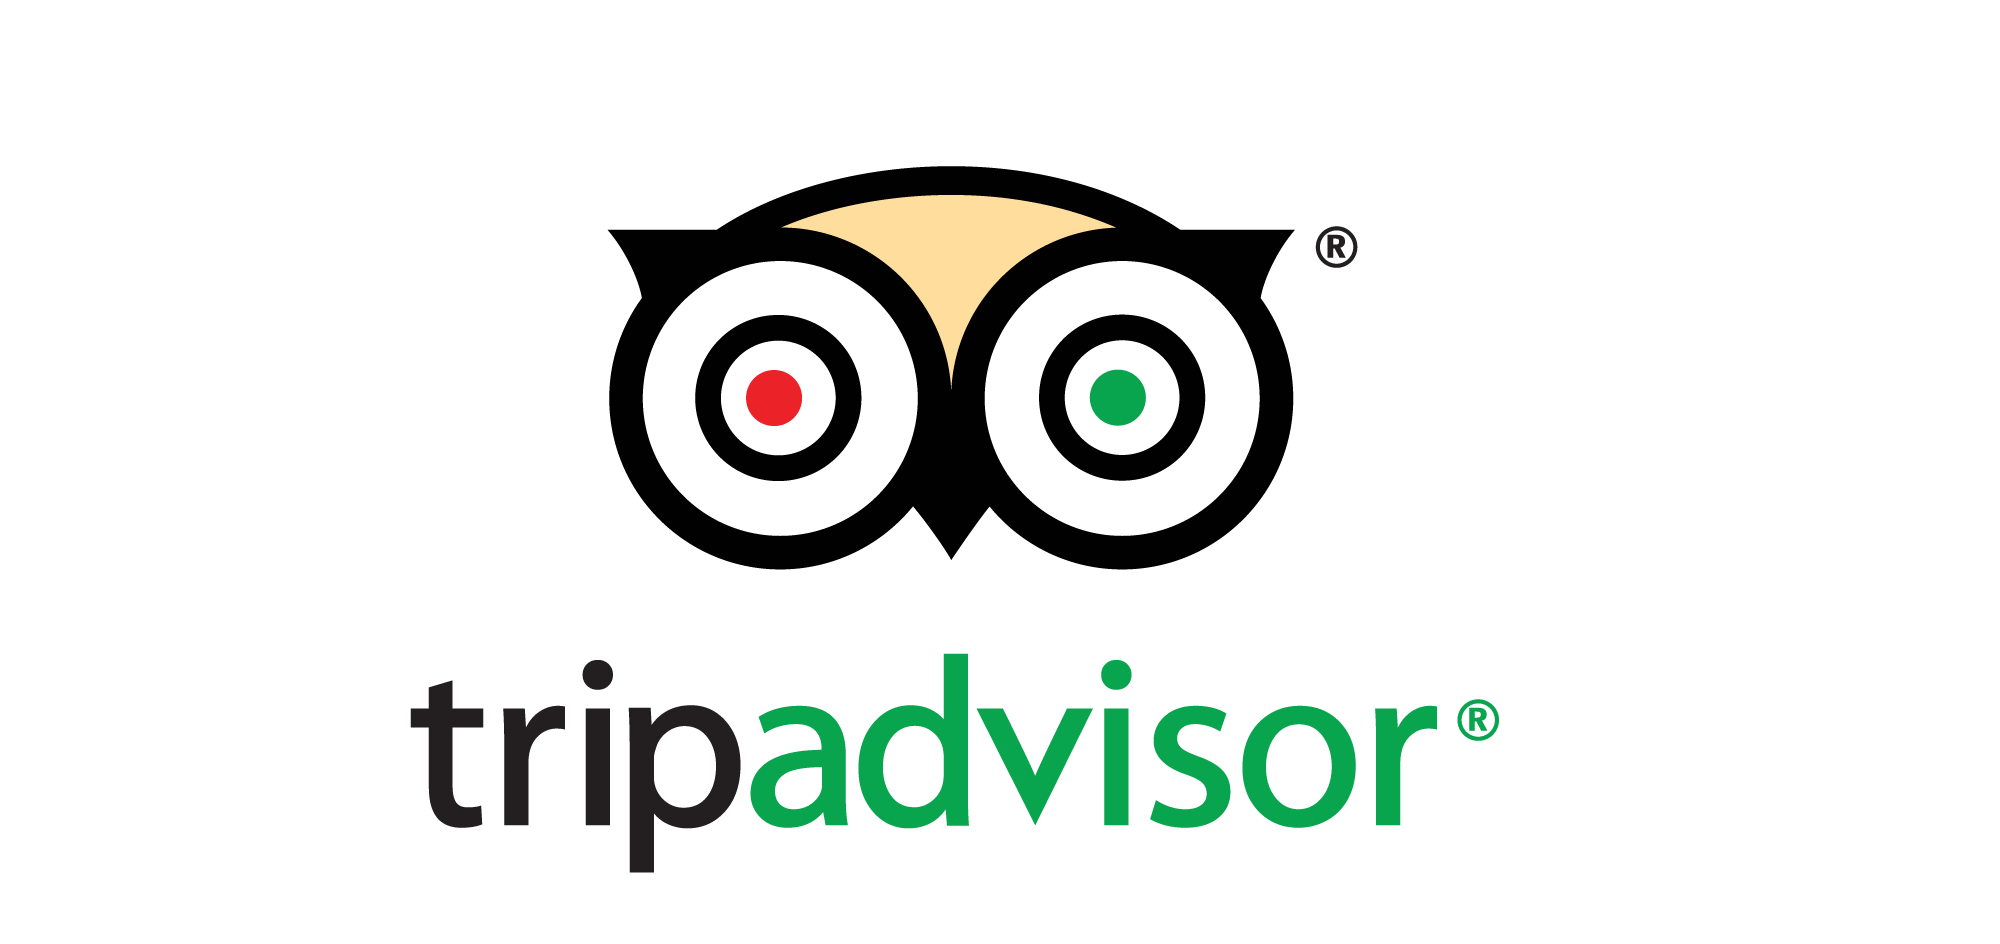 trip advisor logo logo brands for free hd 3d